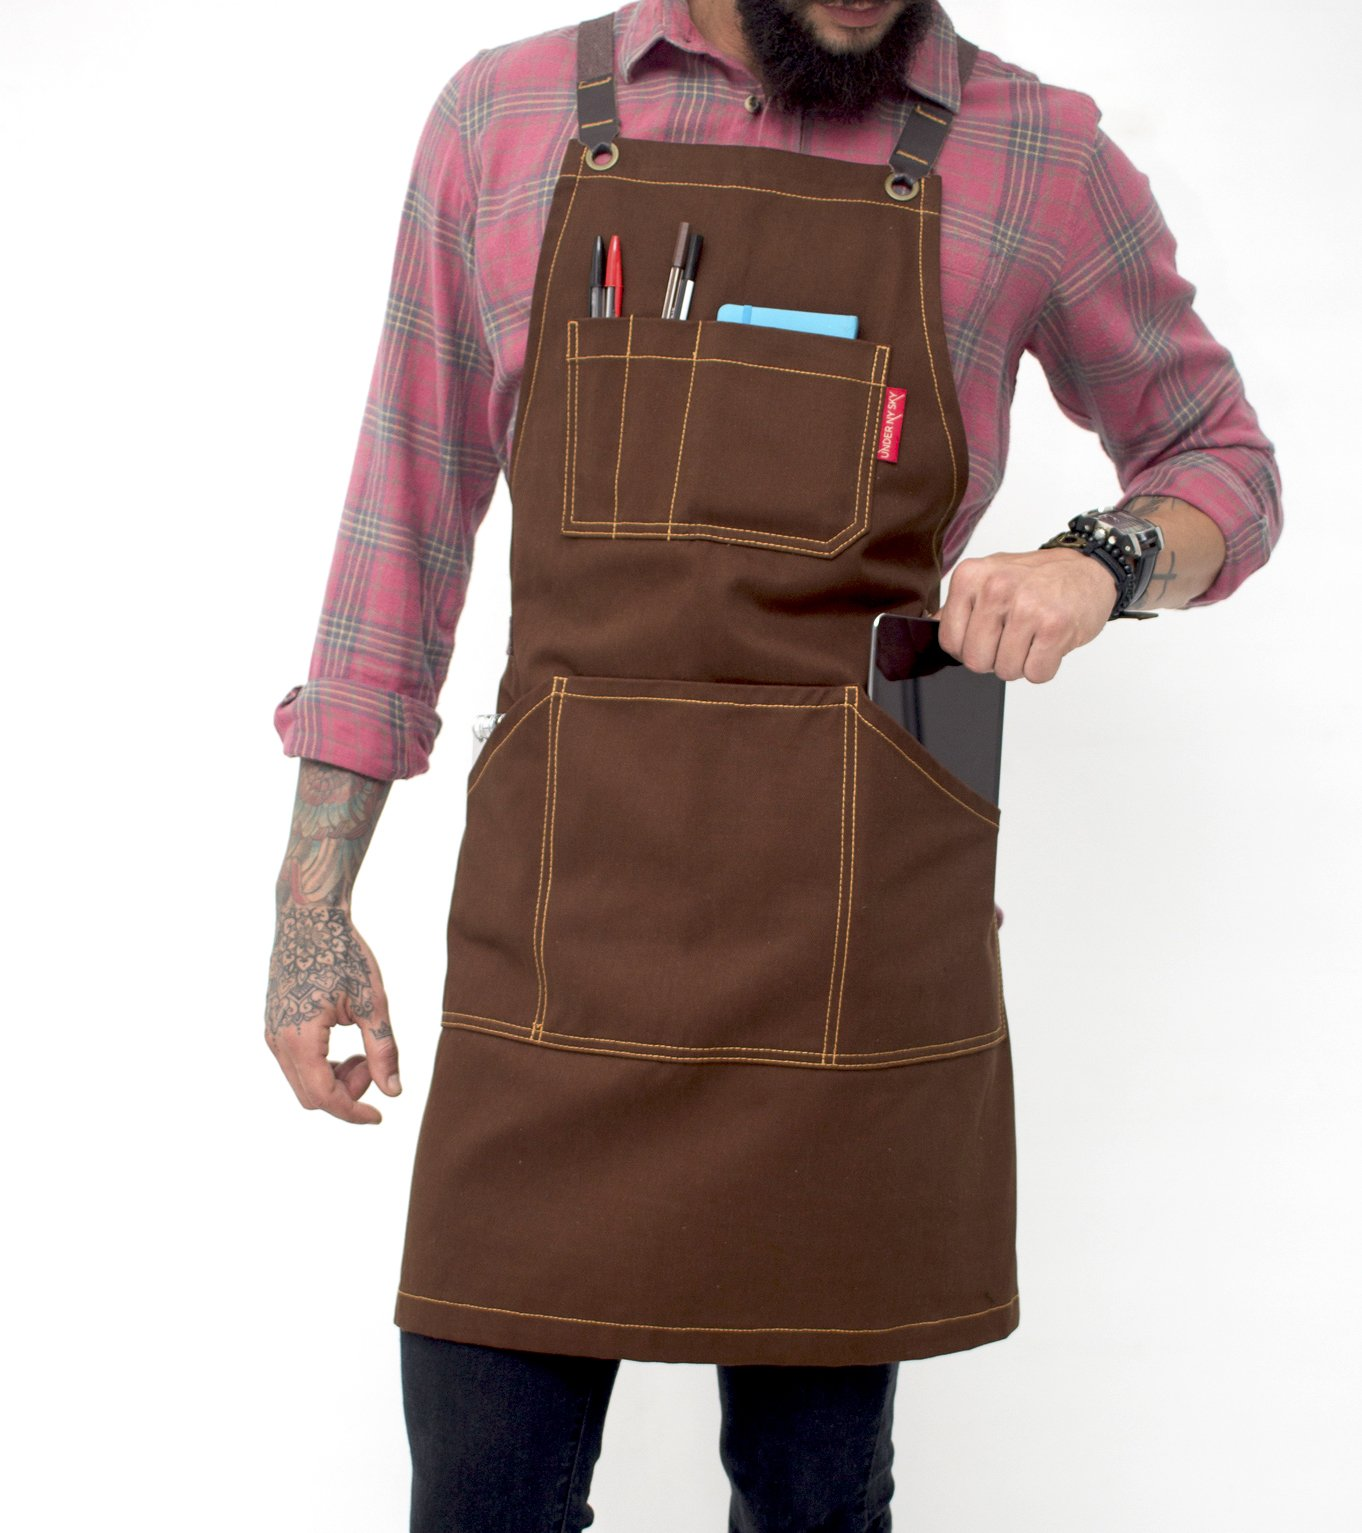 Under NY Sky Essential Chocolate Brown Apron – Cross-Back with Durable Twill and Leather Reinforcement, Adjustable for Men and Women – Pro Chef, Tattoo Artist, Baker, Barista, Bartender, Server Aprons